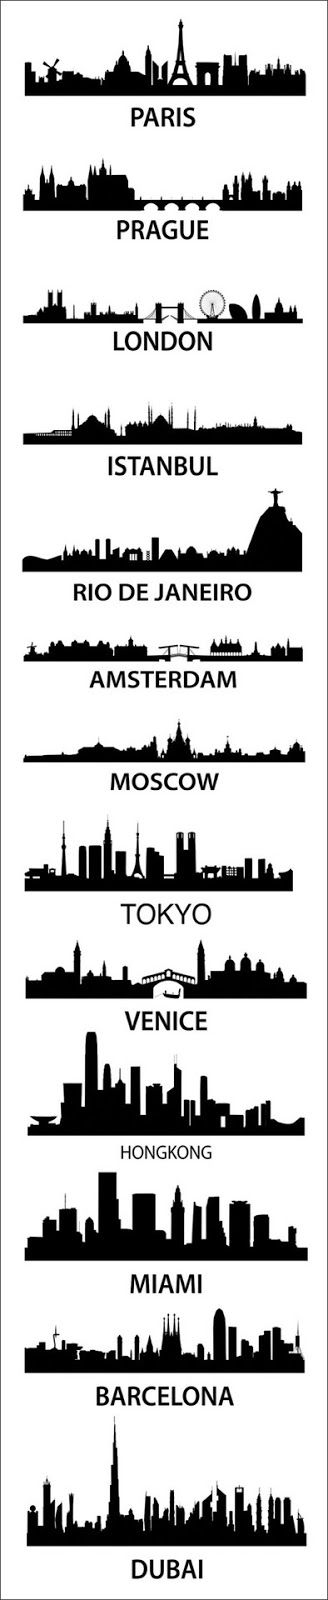 Make a city skyline-thing - like this - of my own city! :-D